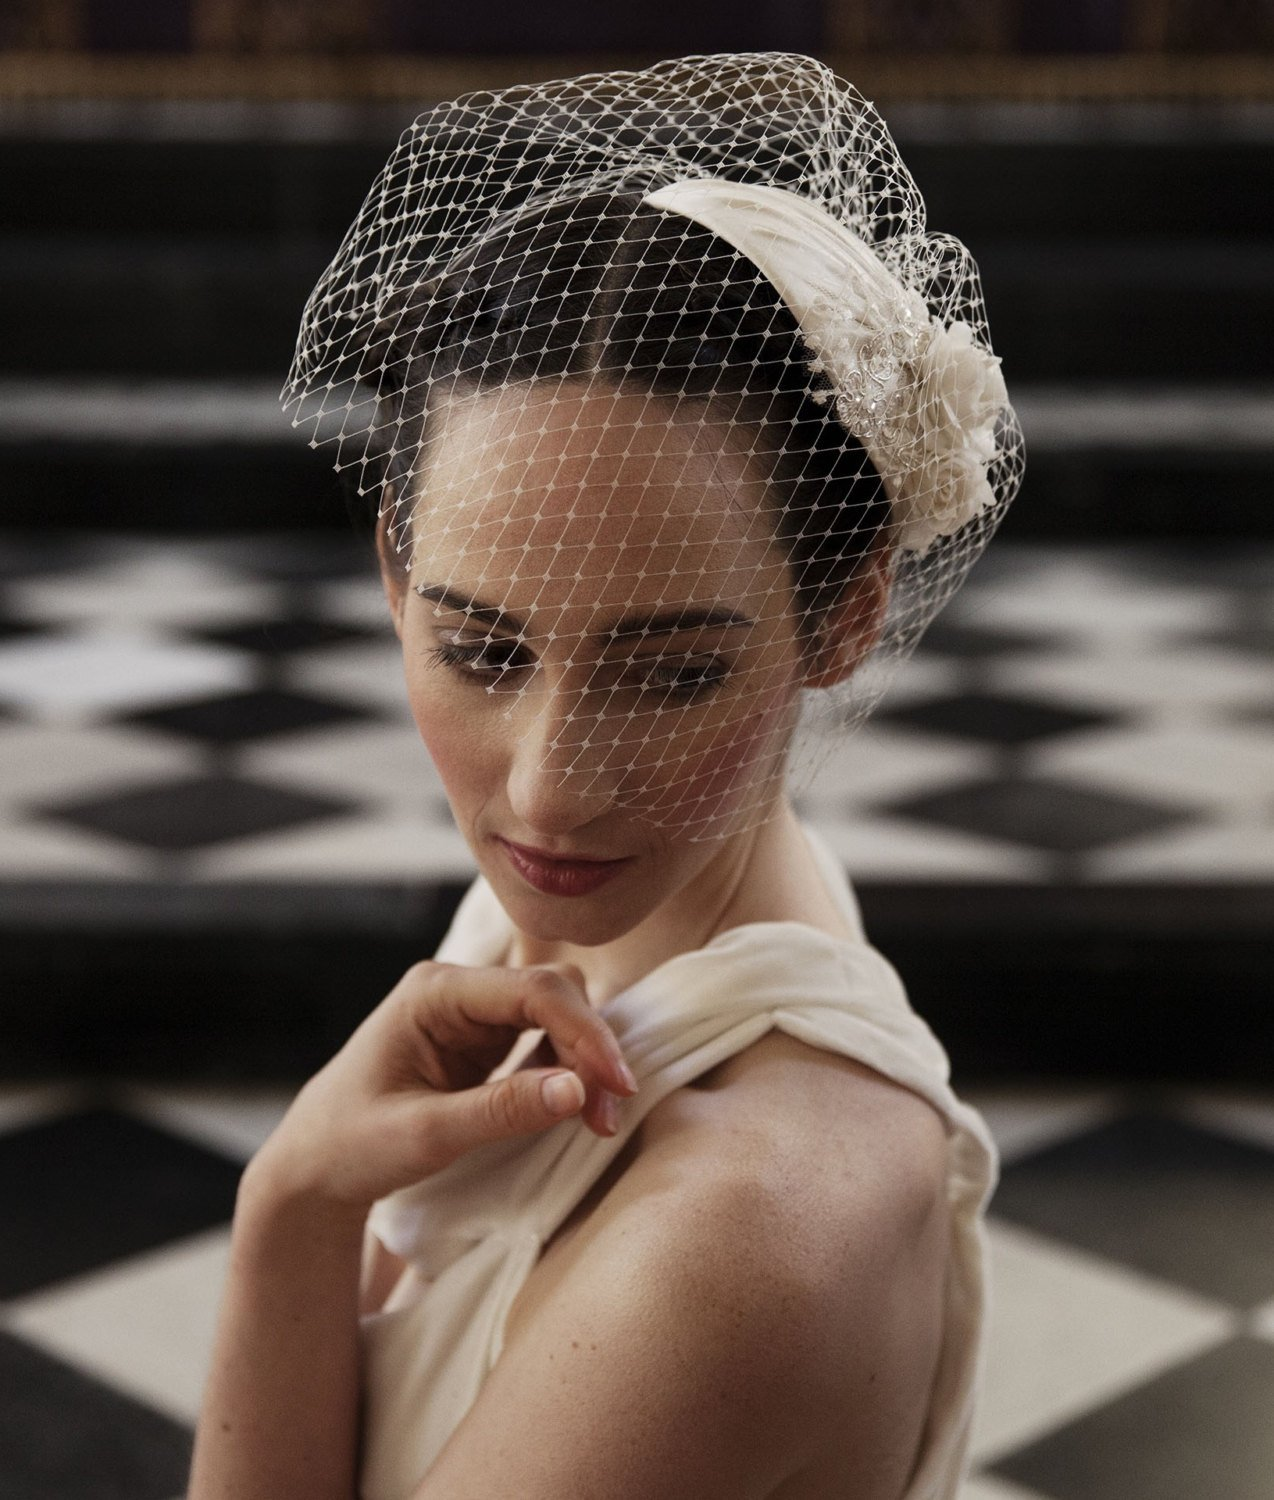 Ivory Wedding Headpiece with detachable birdcage veil and flower and lace details -for 1940s, 1930s style wedding dress -Agnes Hart UK.jpg